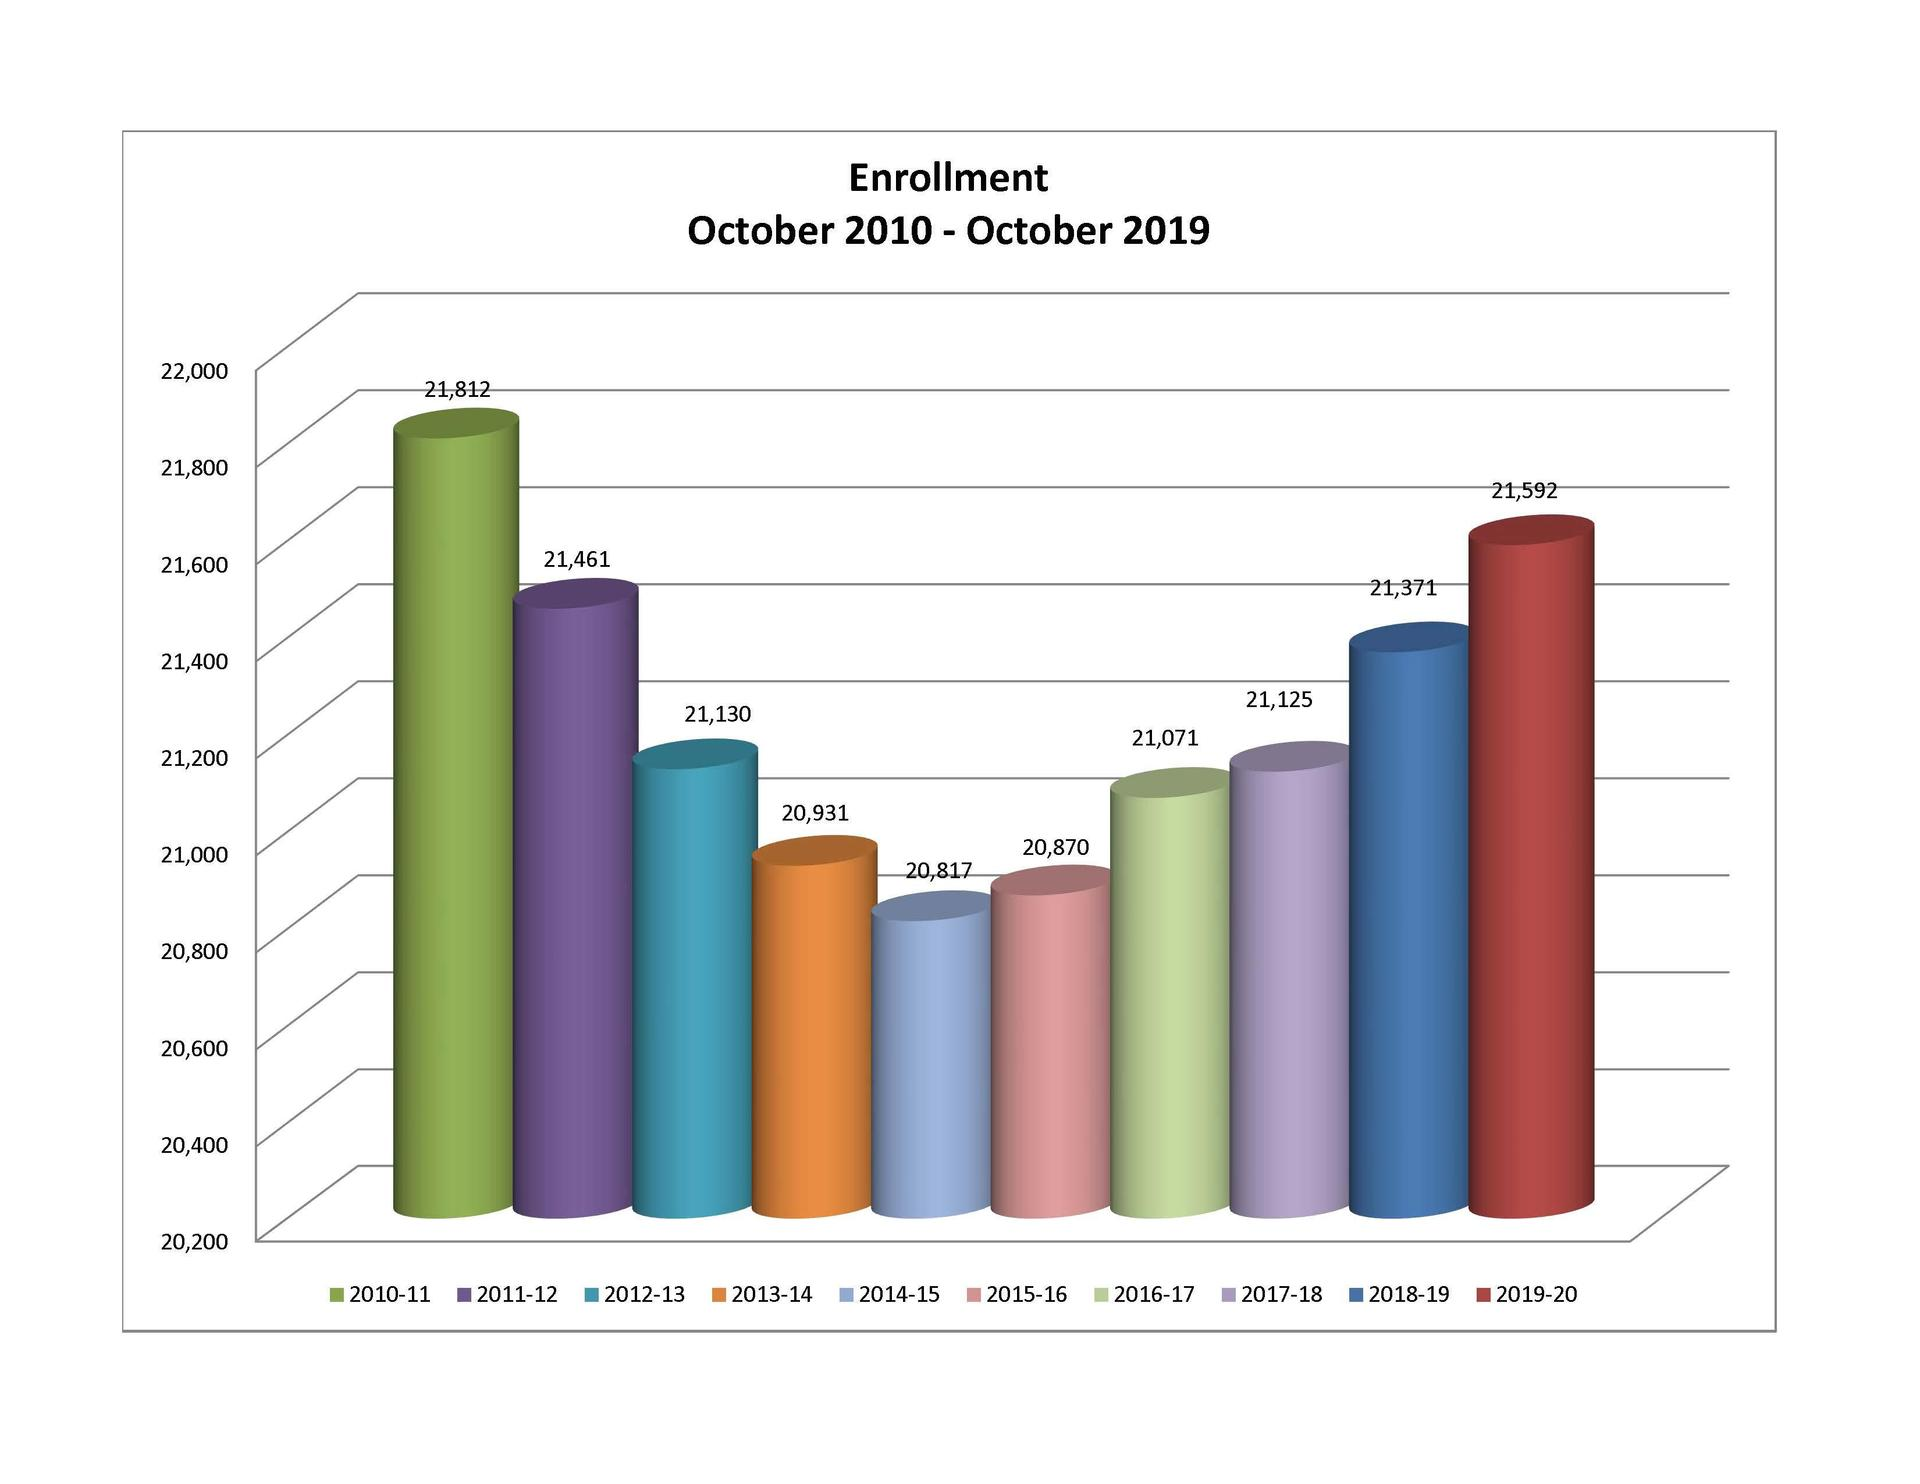 Bar chart showing enrollment from 2010-11 through 2019-20